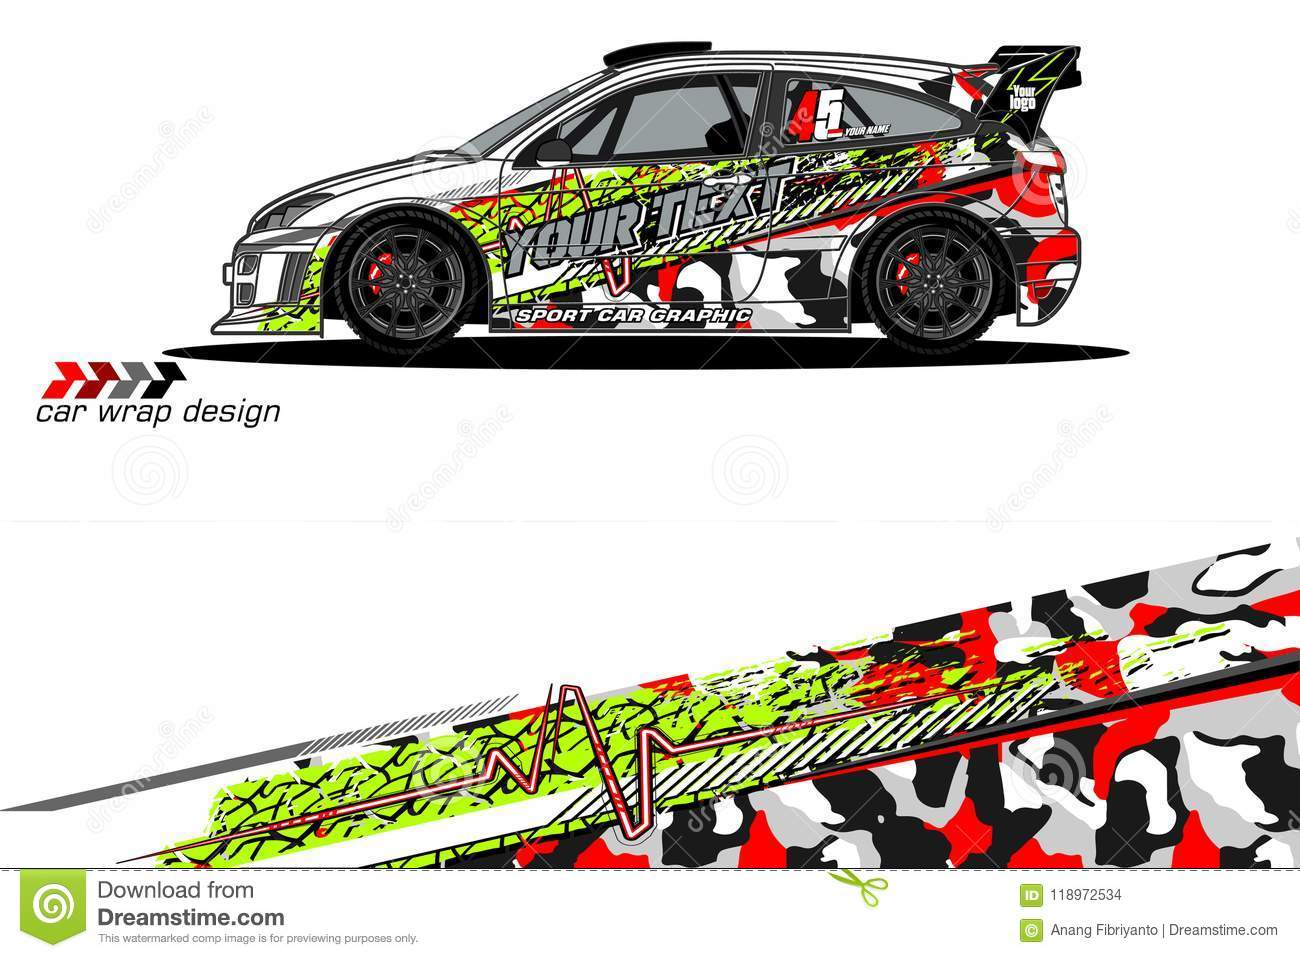 Vehicle livery graphic vector abstract grunge background design for vehicle vinyl wrap and car branding